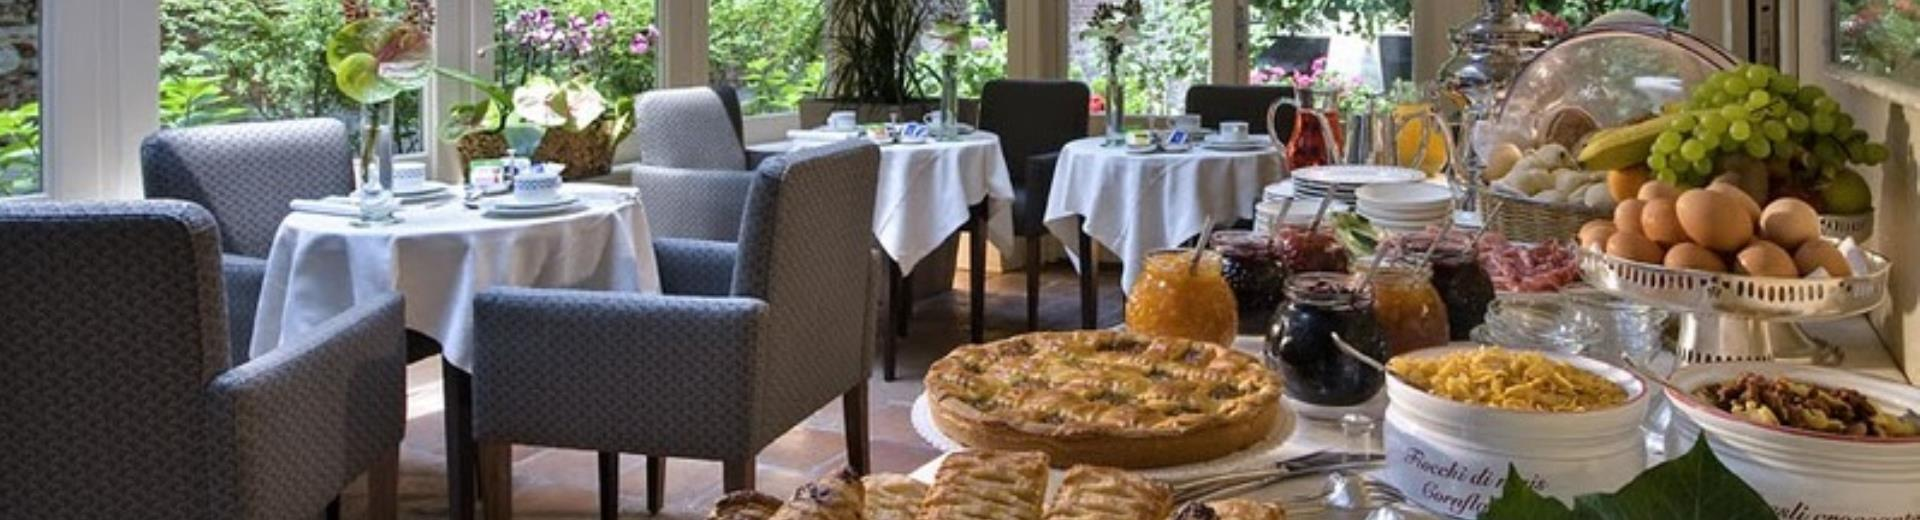 The breakfast room at the Best Western Hotel Piemontese Bergamo